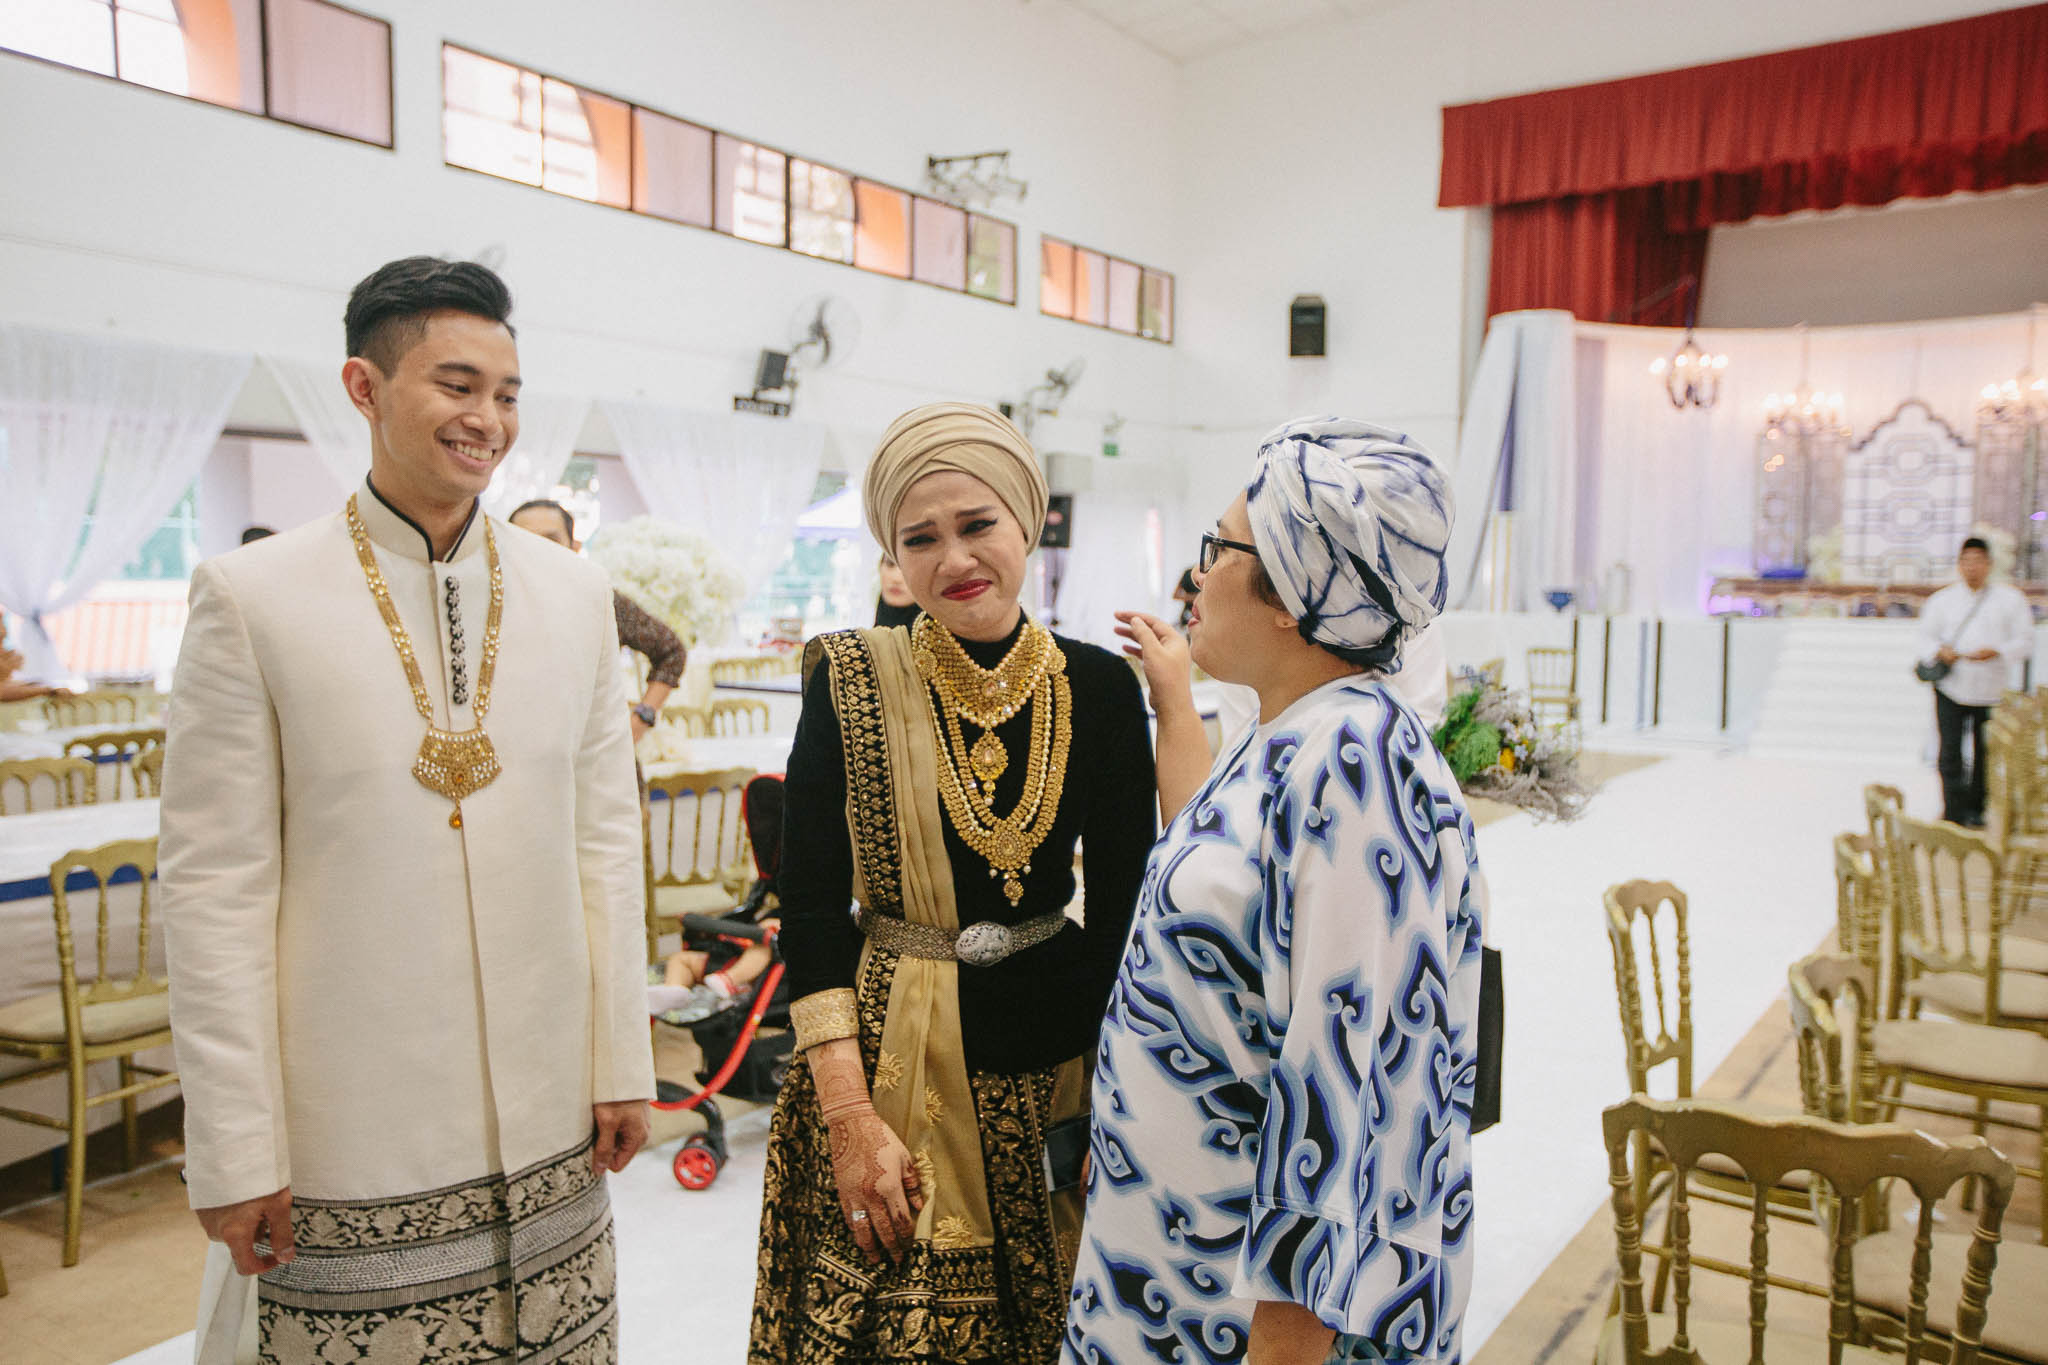 singapore-wedding-photographer-mega-asyraf-83.jpg